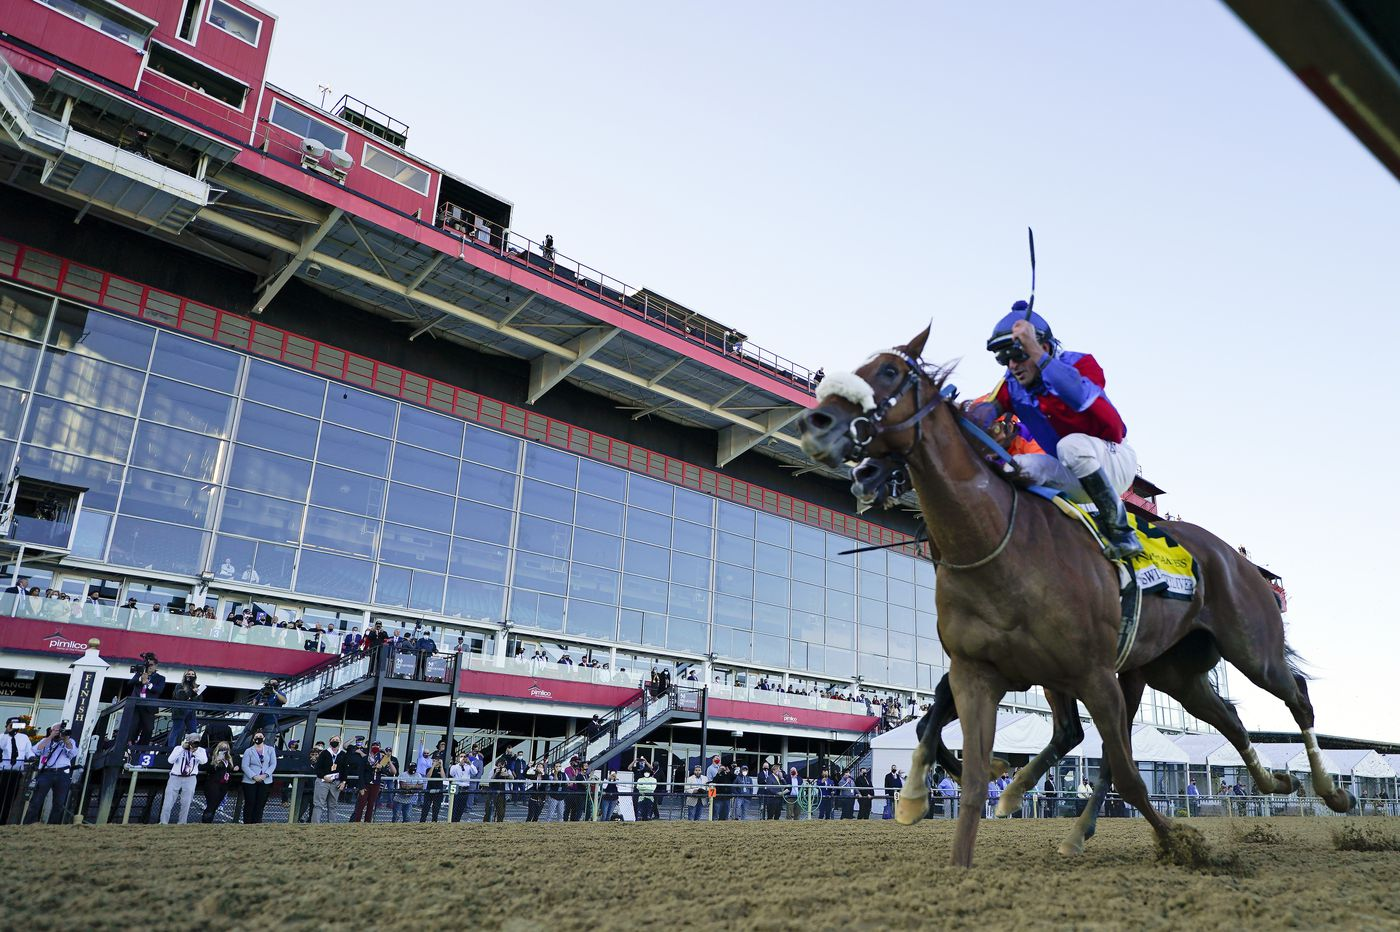 Swiss Skydiver wins Preakness, outrunning Kentucky Derby winner Authentic down the stretch